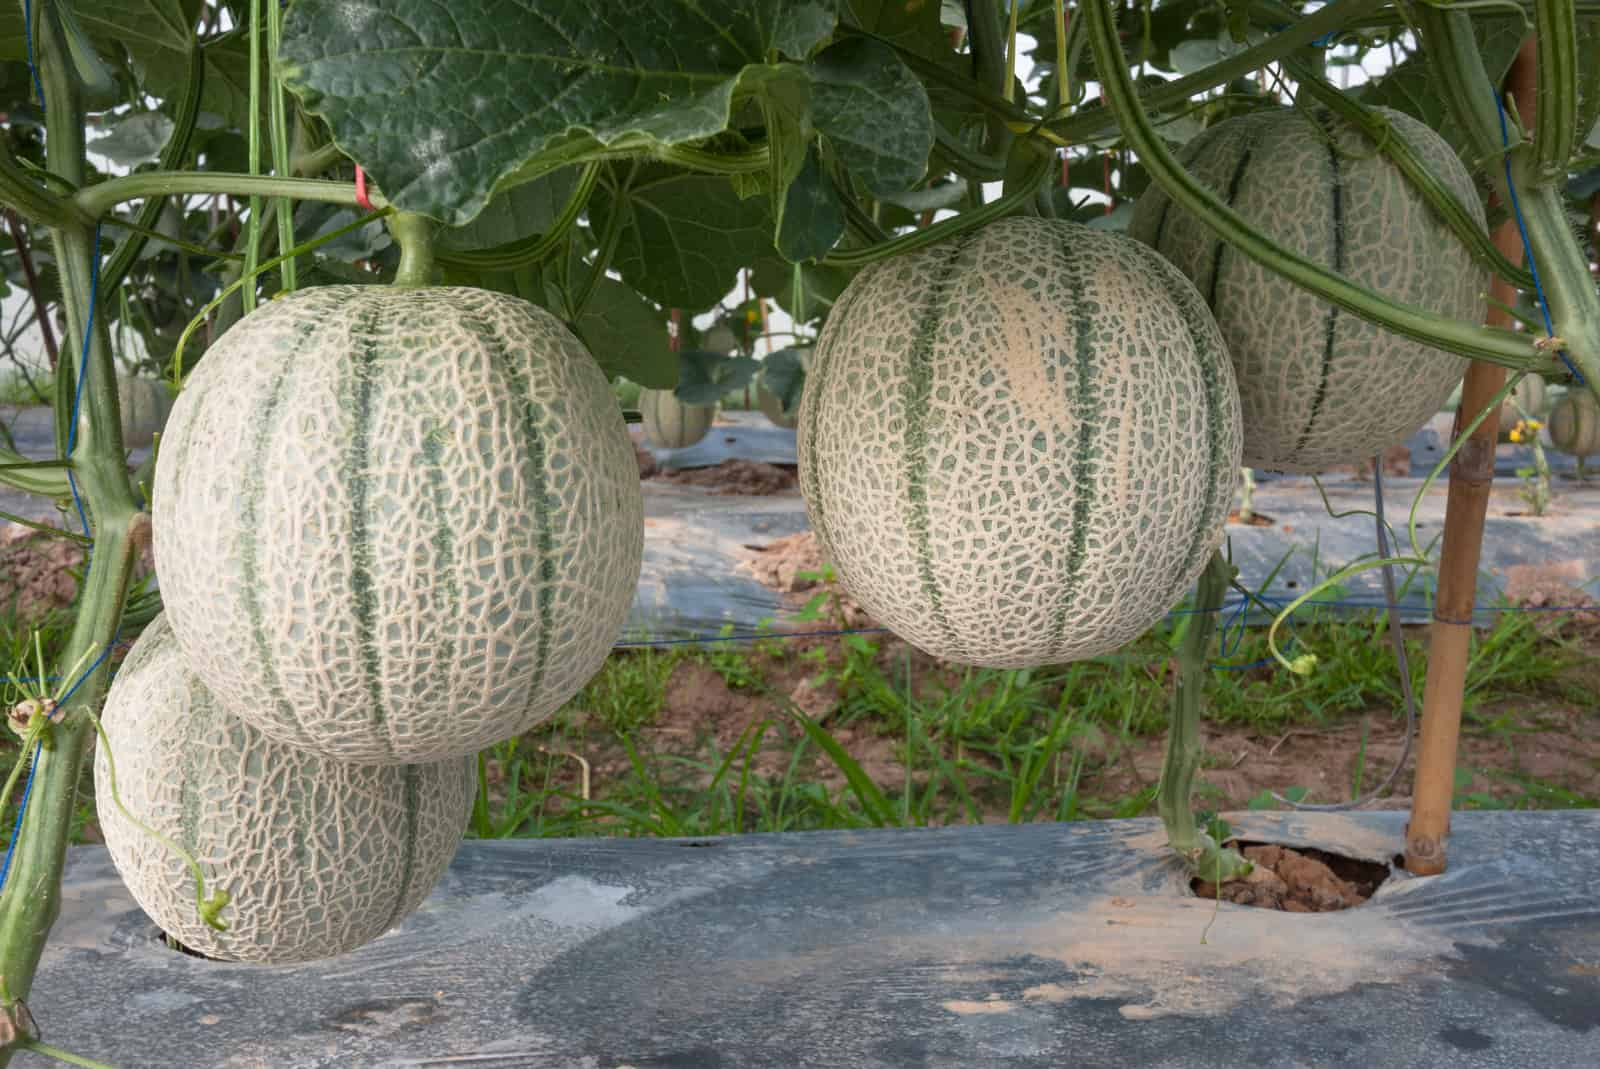 How To Plant Grow And Harvest Cantaloupes And Summer Melons We are cantaloupe, a young, interdisciplinary team consisting of 3d artists, engineers and software developers. harvest cantaloupes and summer melons